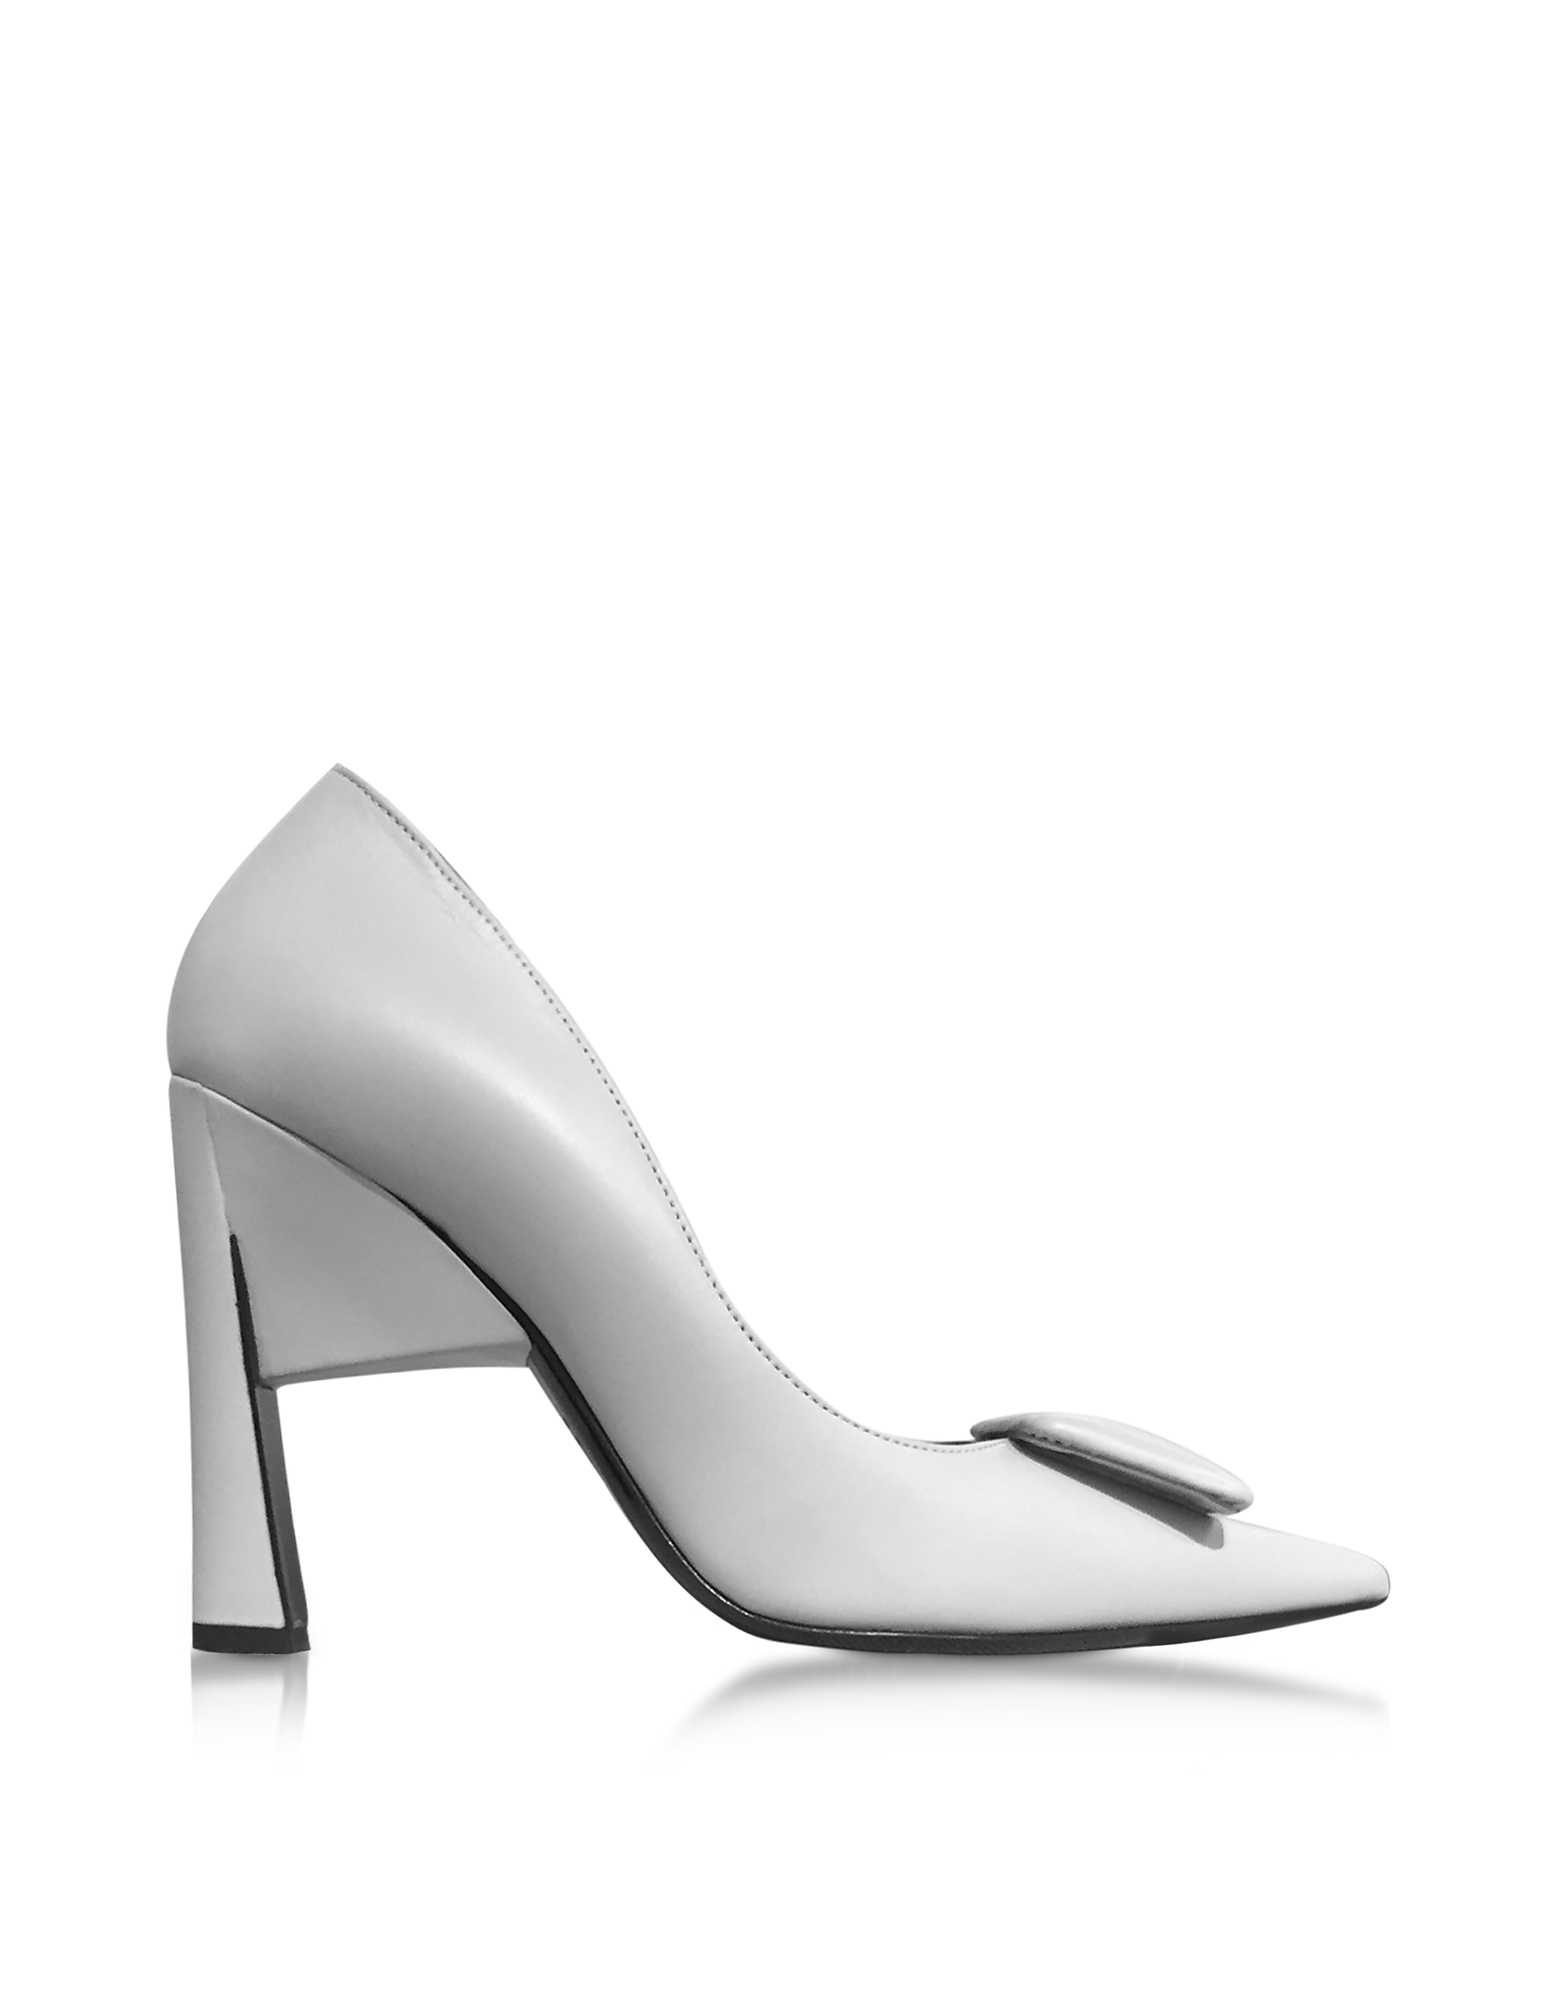 Marni Shoes, Titanium Gray Leather High Heel Pumps